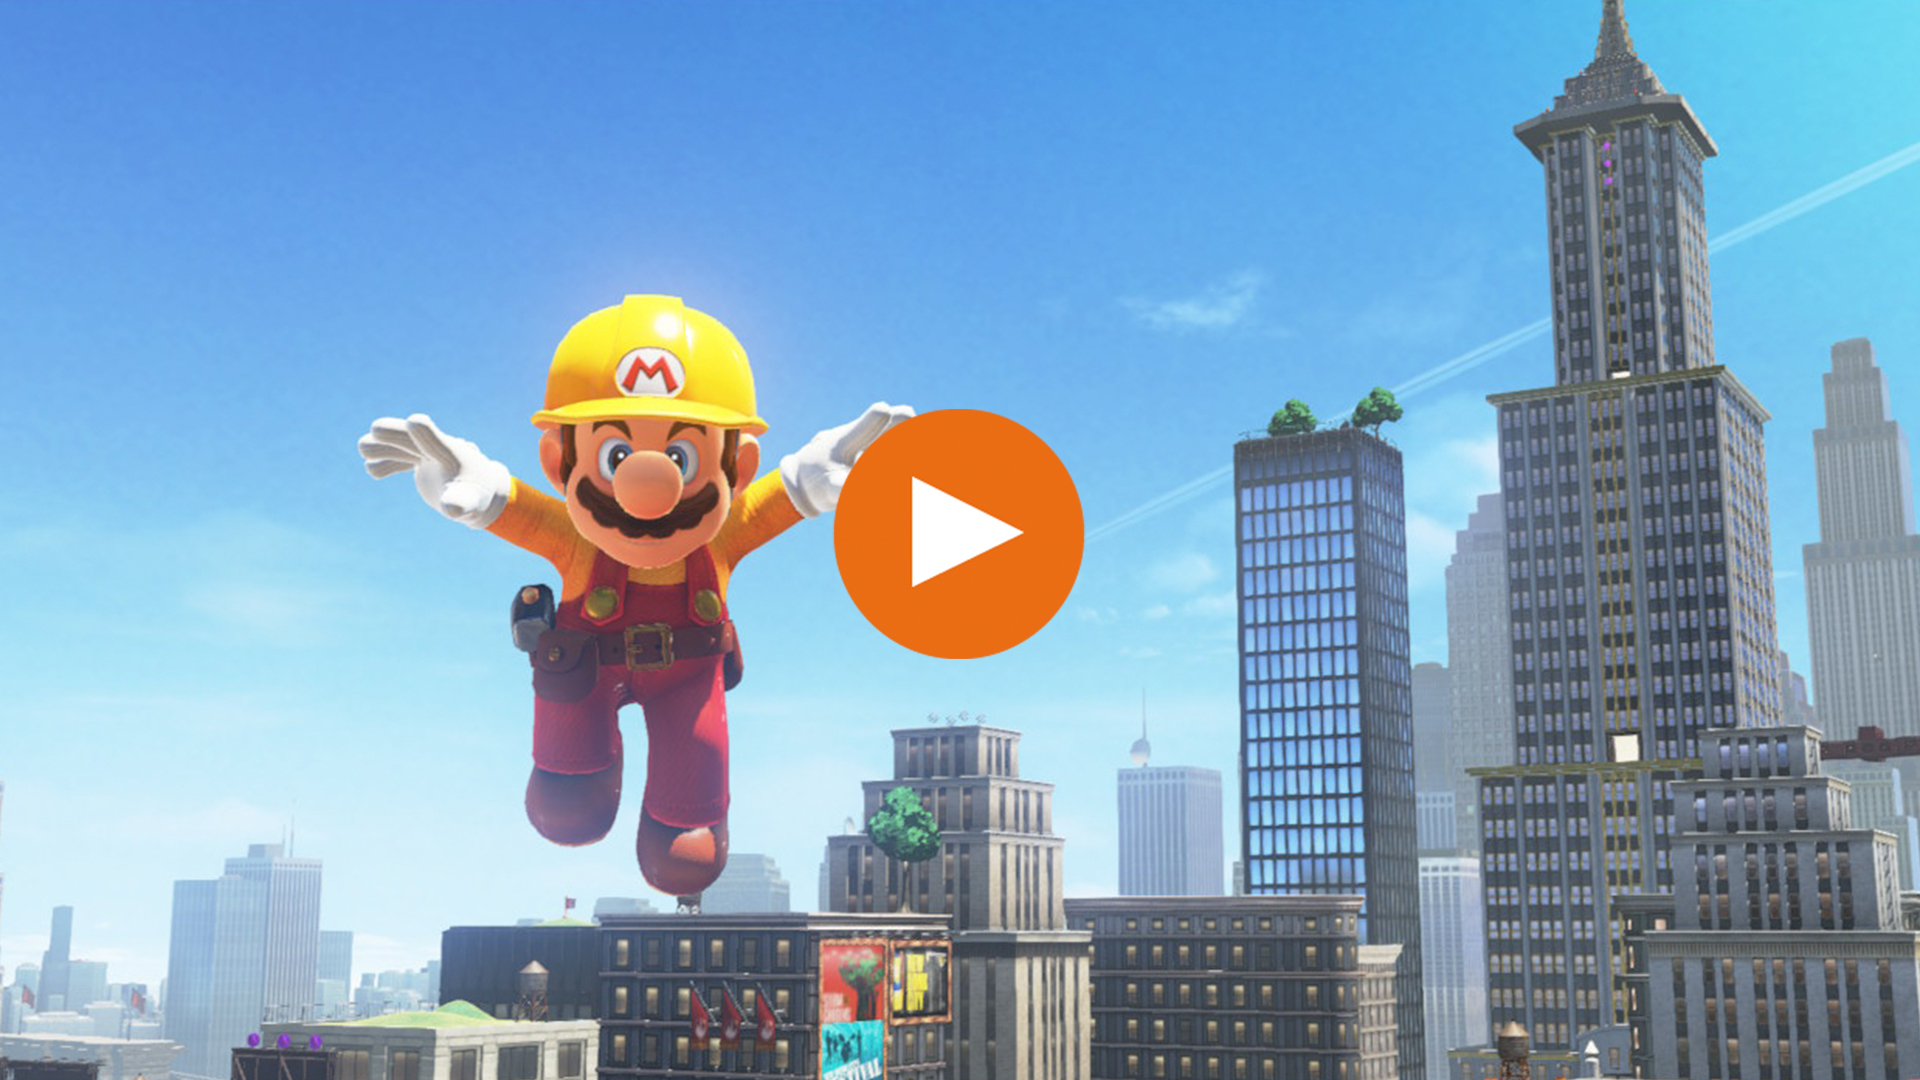 15 Super Mario Odyssey hidden mechanics the game doesn't tell you